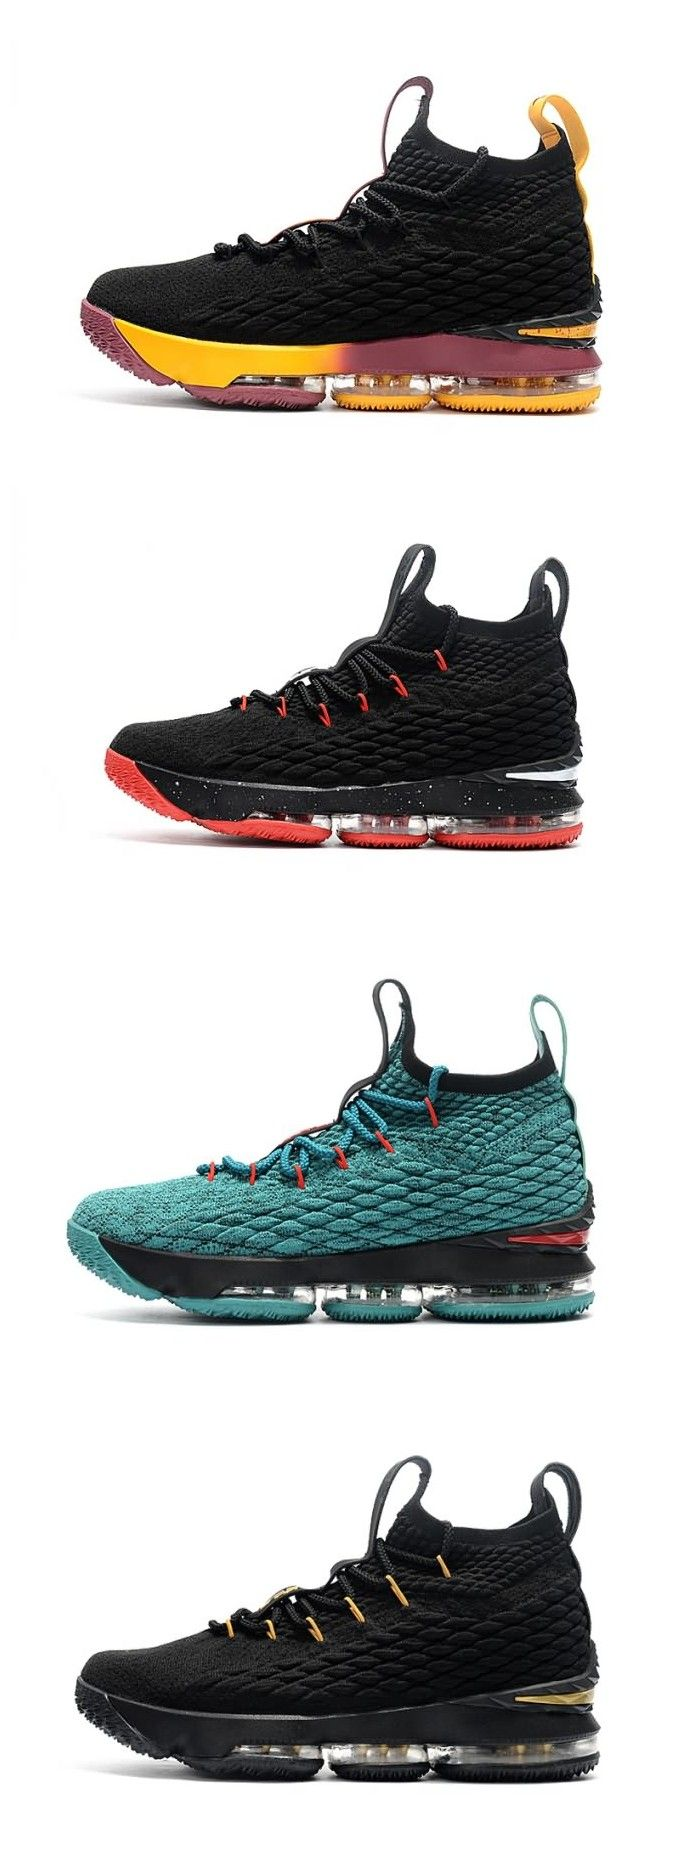 more photos ef5b2 96be2 411b5 c8bbf  discount code for nike lebron james 15 knit men basketball  shoes free shipping size40 46 whatsapp8613328373859